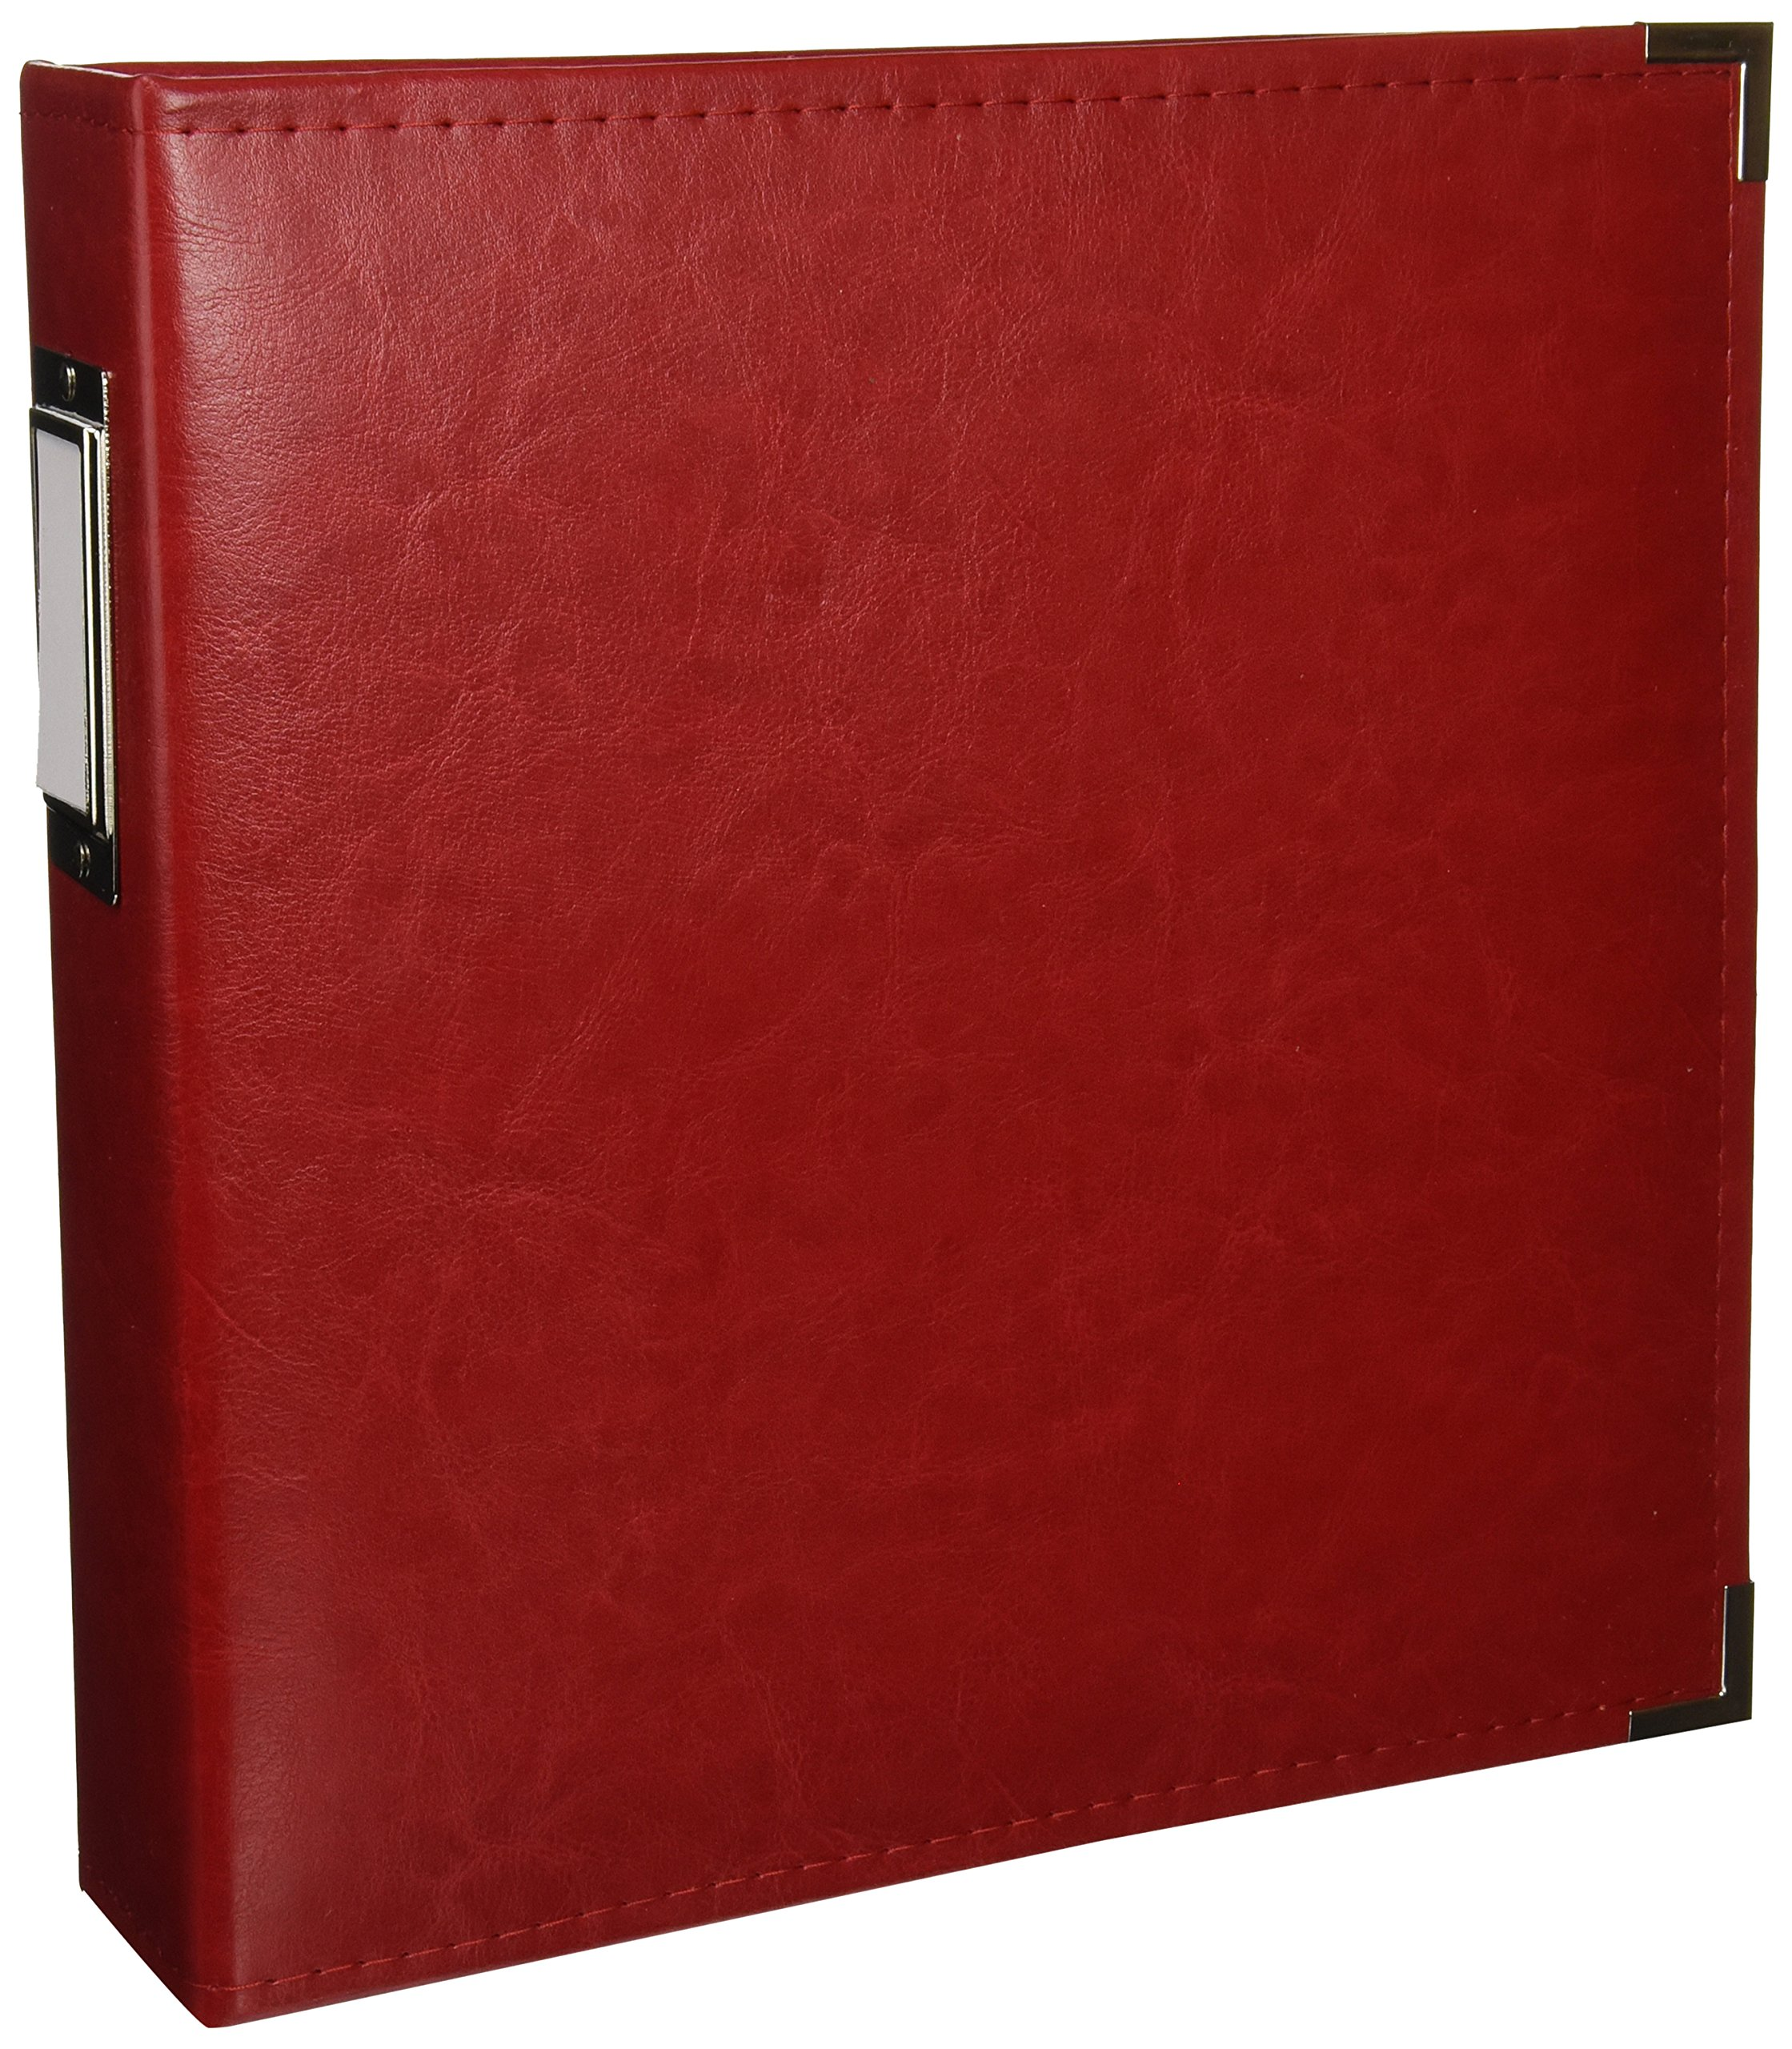 We R Memory Keepers 8.5 x 11-inch Classic Leather 3-Ring Album Real Red, includes 5 page protectors